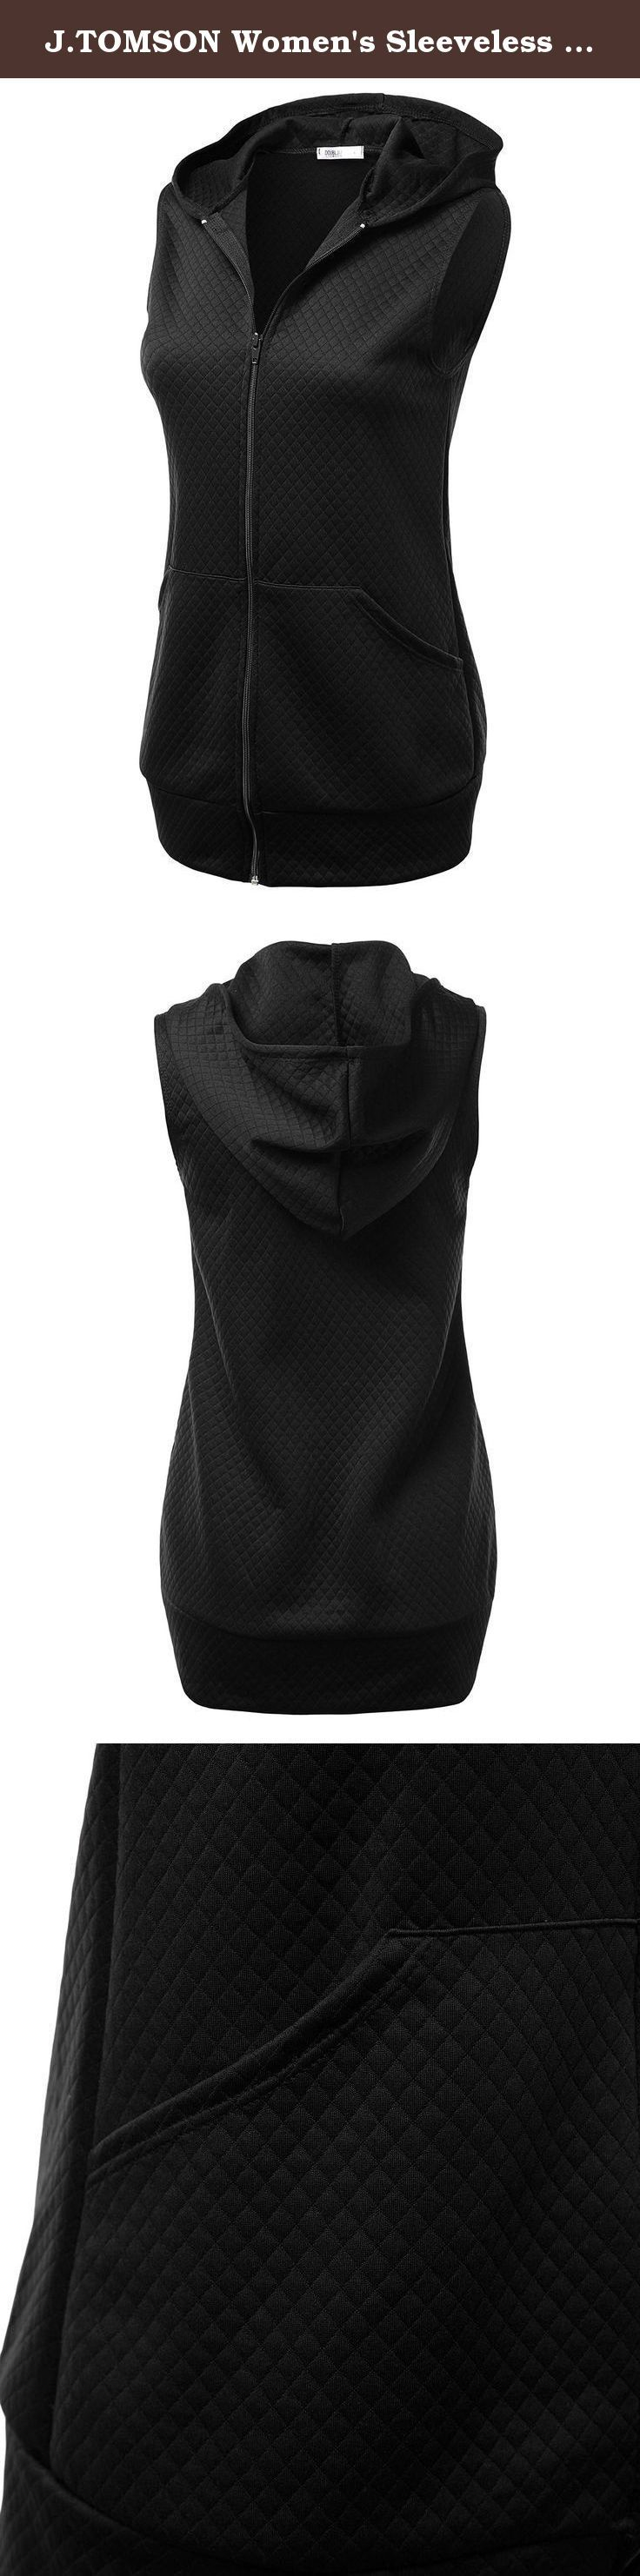 J.TOMSON Women's Sleeveless Animal Print & Solid Hooded Zip Up Vest Jacket. J.TOMSON Women's Sleeveless Animal Print & Solid Hooded Zip Up Vest Jacket is a fashionable match for any outfit. MEASUREMENTS AWOV081: S - Shoulder: 13.5in. / Chest: 30in. / Length: 28in. M - Shoulder: 14in. / Chest: 32in. / Length: 28.5in. L - Shoulder: 14.5in. / Chest: 34in. / Length: 29in. XL - Shoulder: 15in. / Chest: 37in. / Length: 30in. 2XL - Shoulder: 15.5in. / Chest: 39in. / Length: 31in. 3XL - Shoulder:...